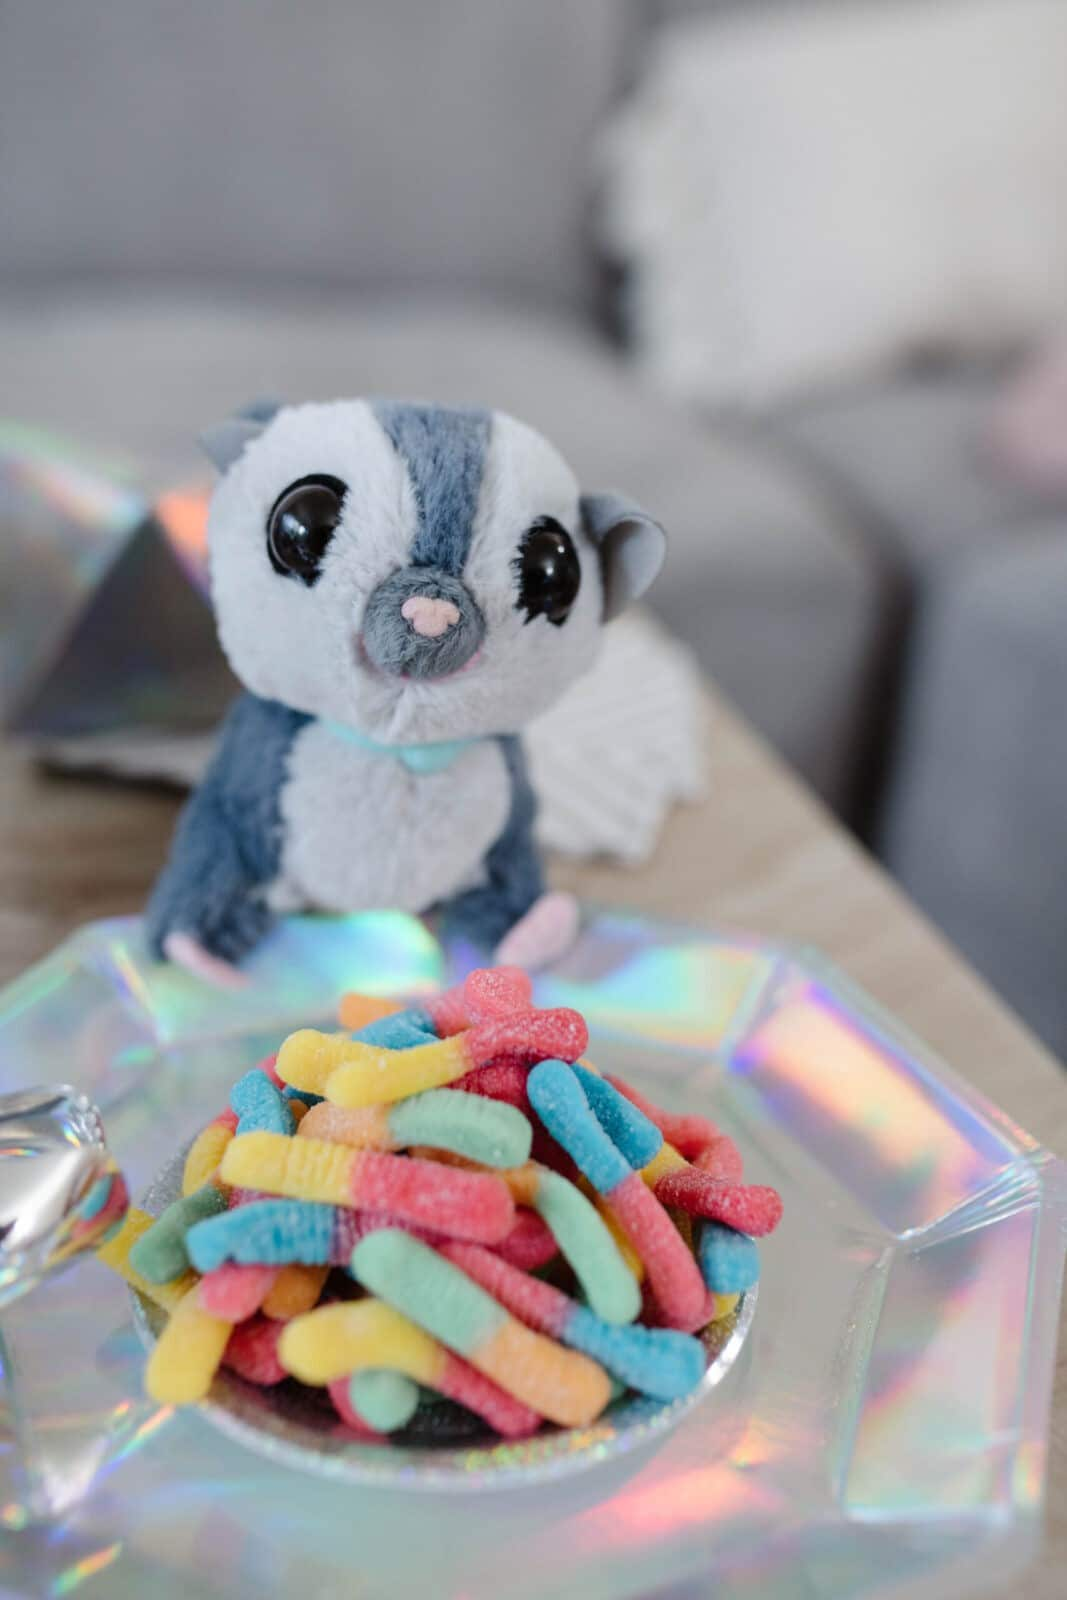 Dolittle recipes complete with movie viewing party